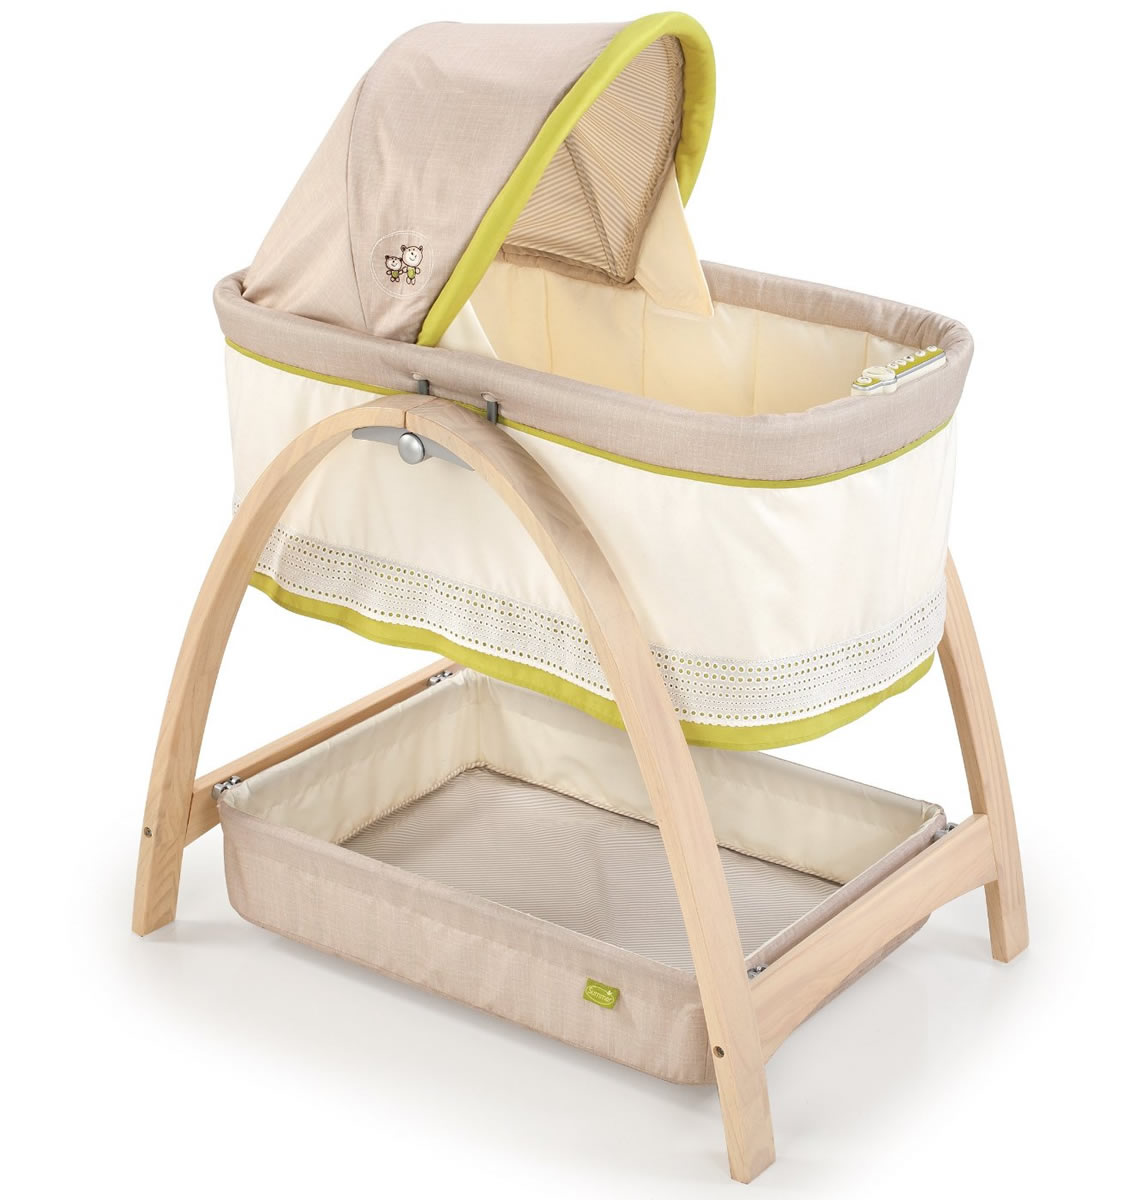 Stroller Bassinet Mattress Summer Infant Bentwood Motion Bassinet Bear Buddies